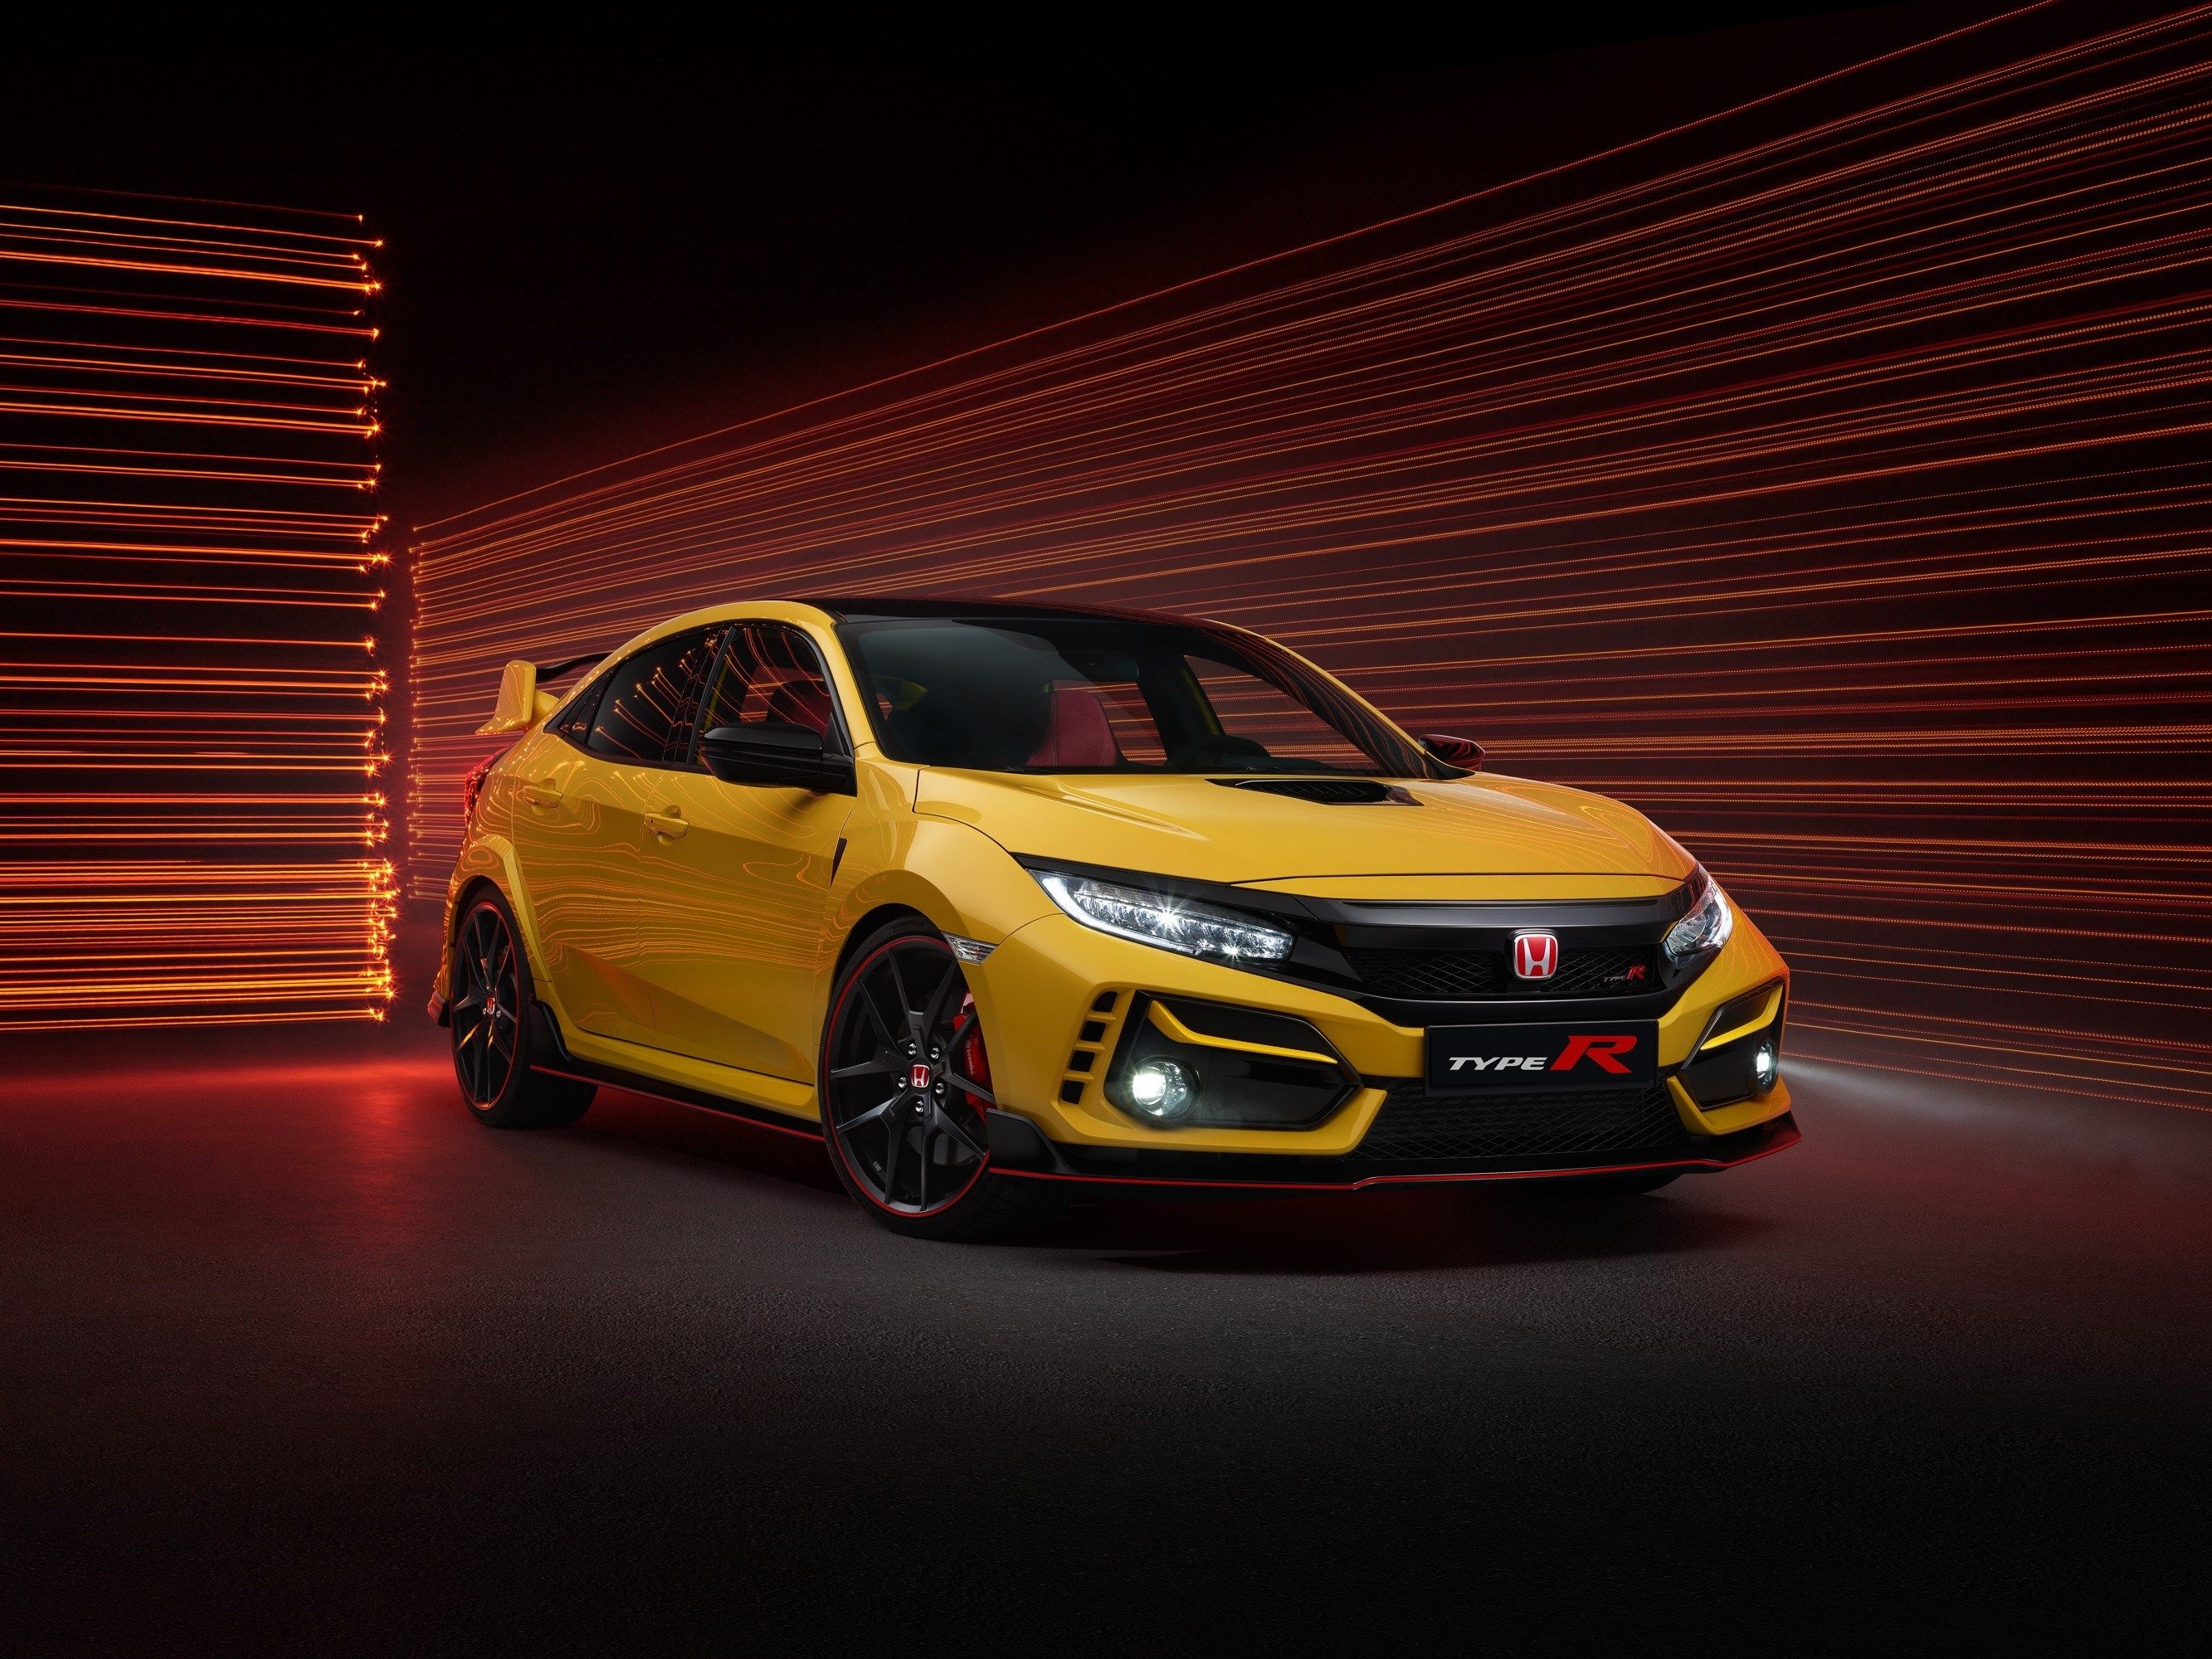 The 2021 Civic Type R Limited Edition Is 46 Pounds Lighter and Only Comes in Yellow